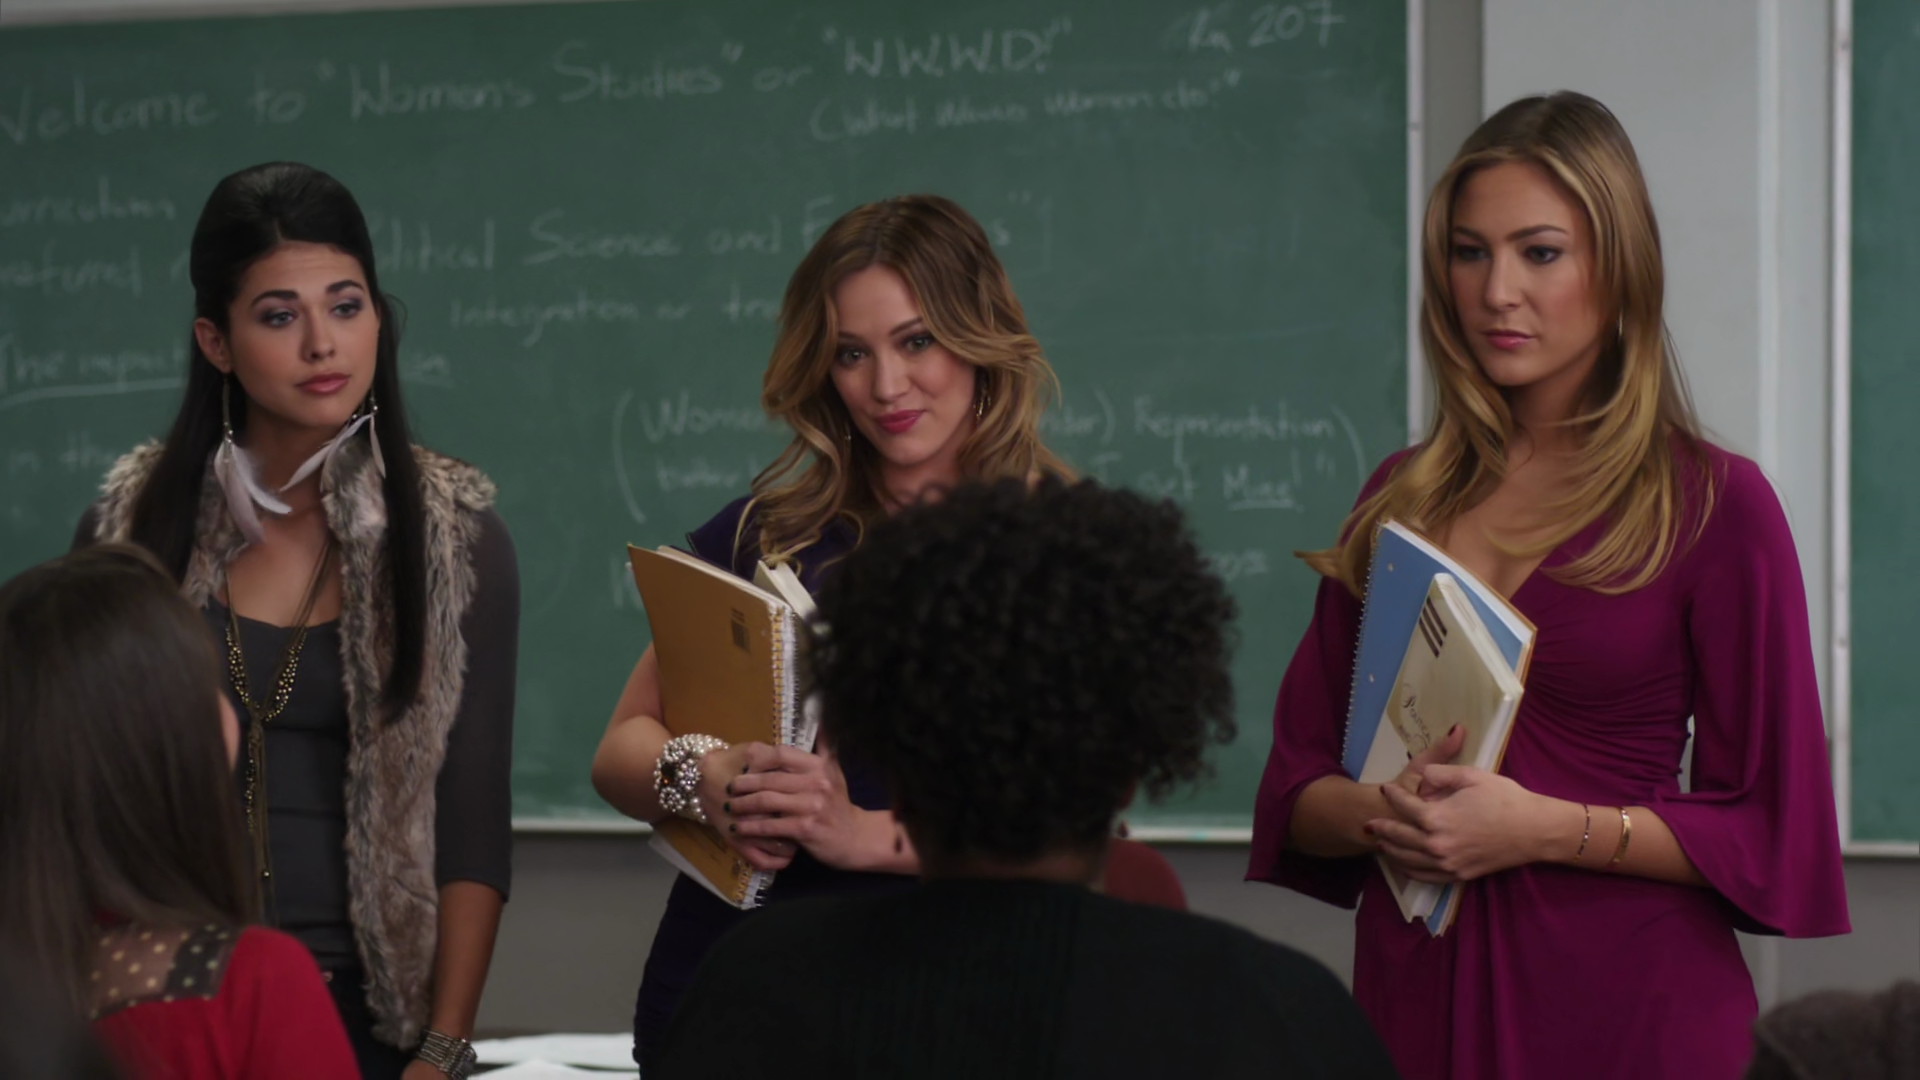 File:Mean girls.png